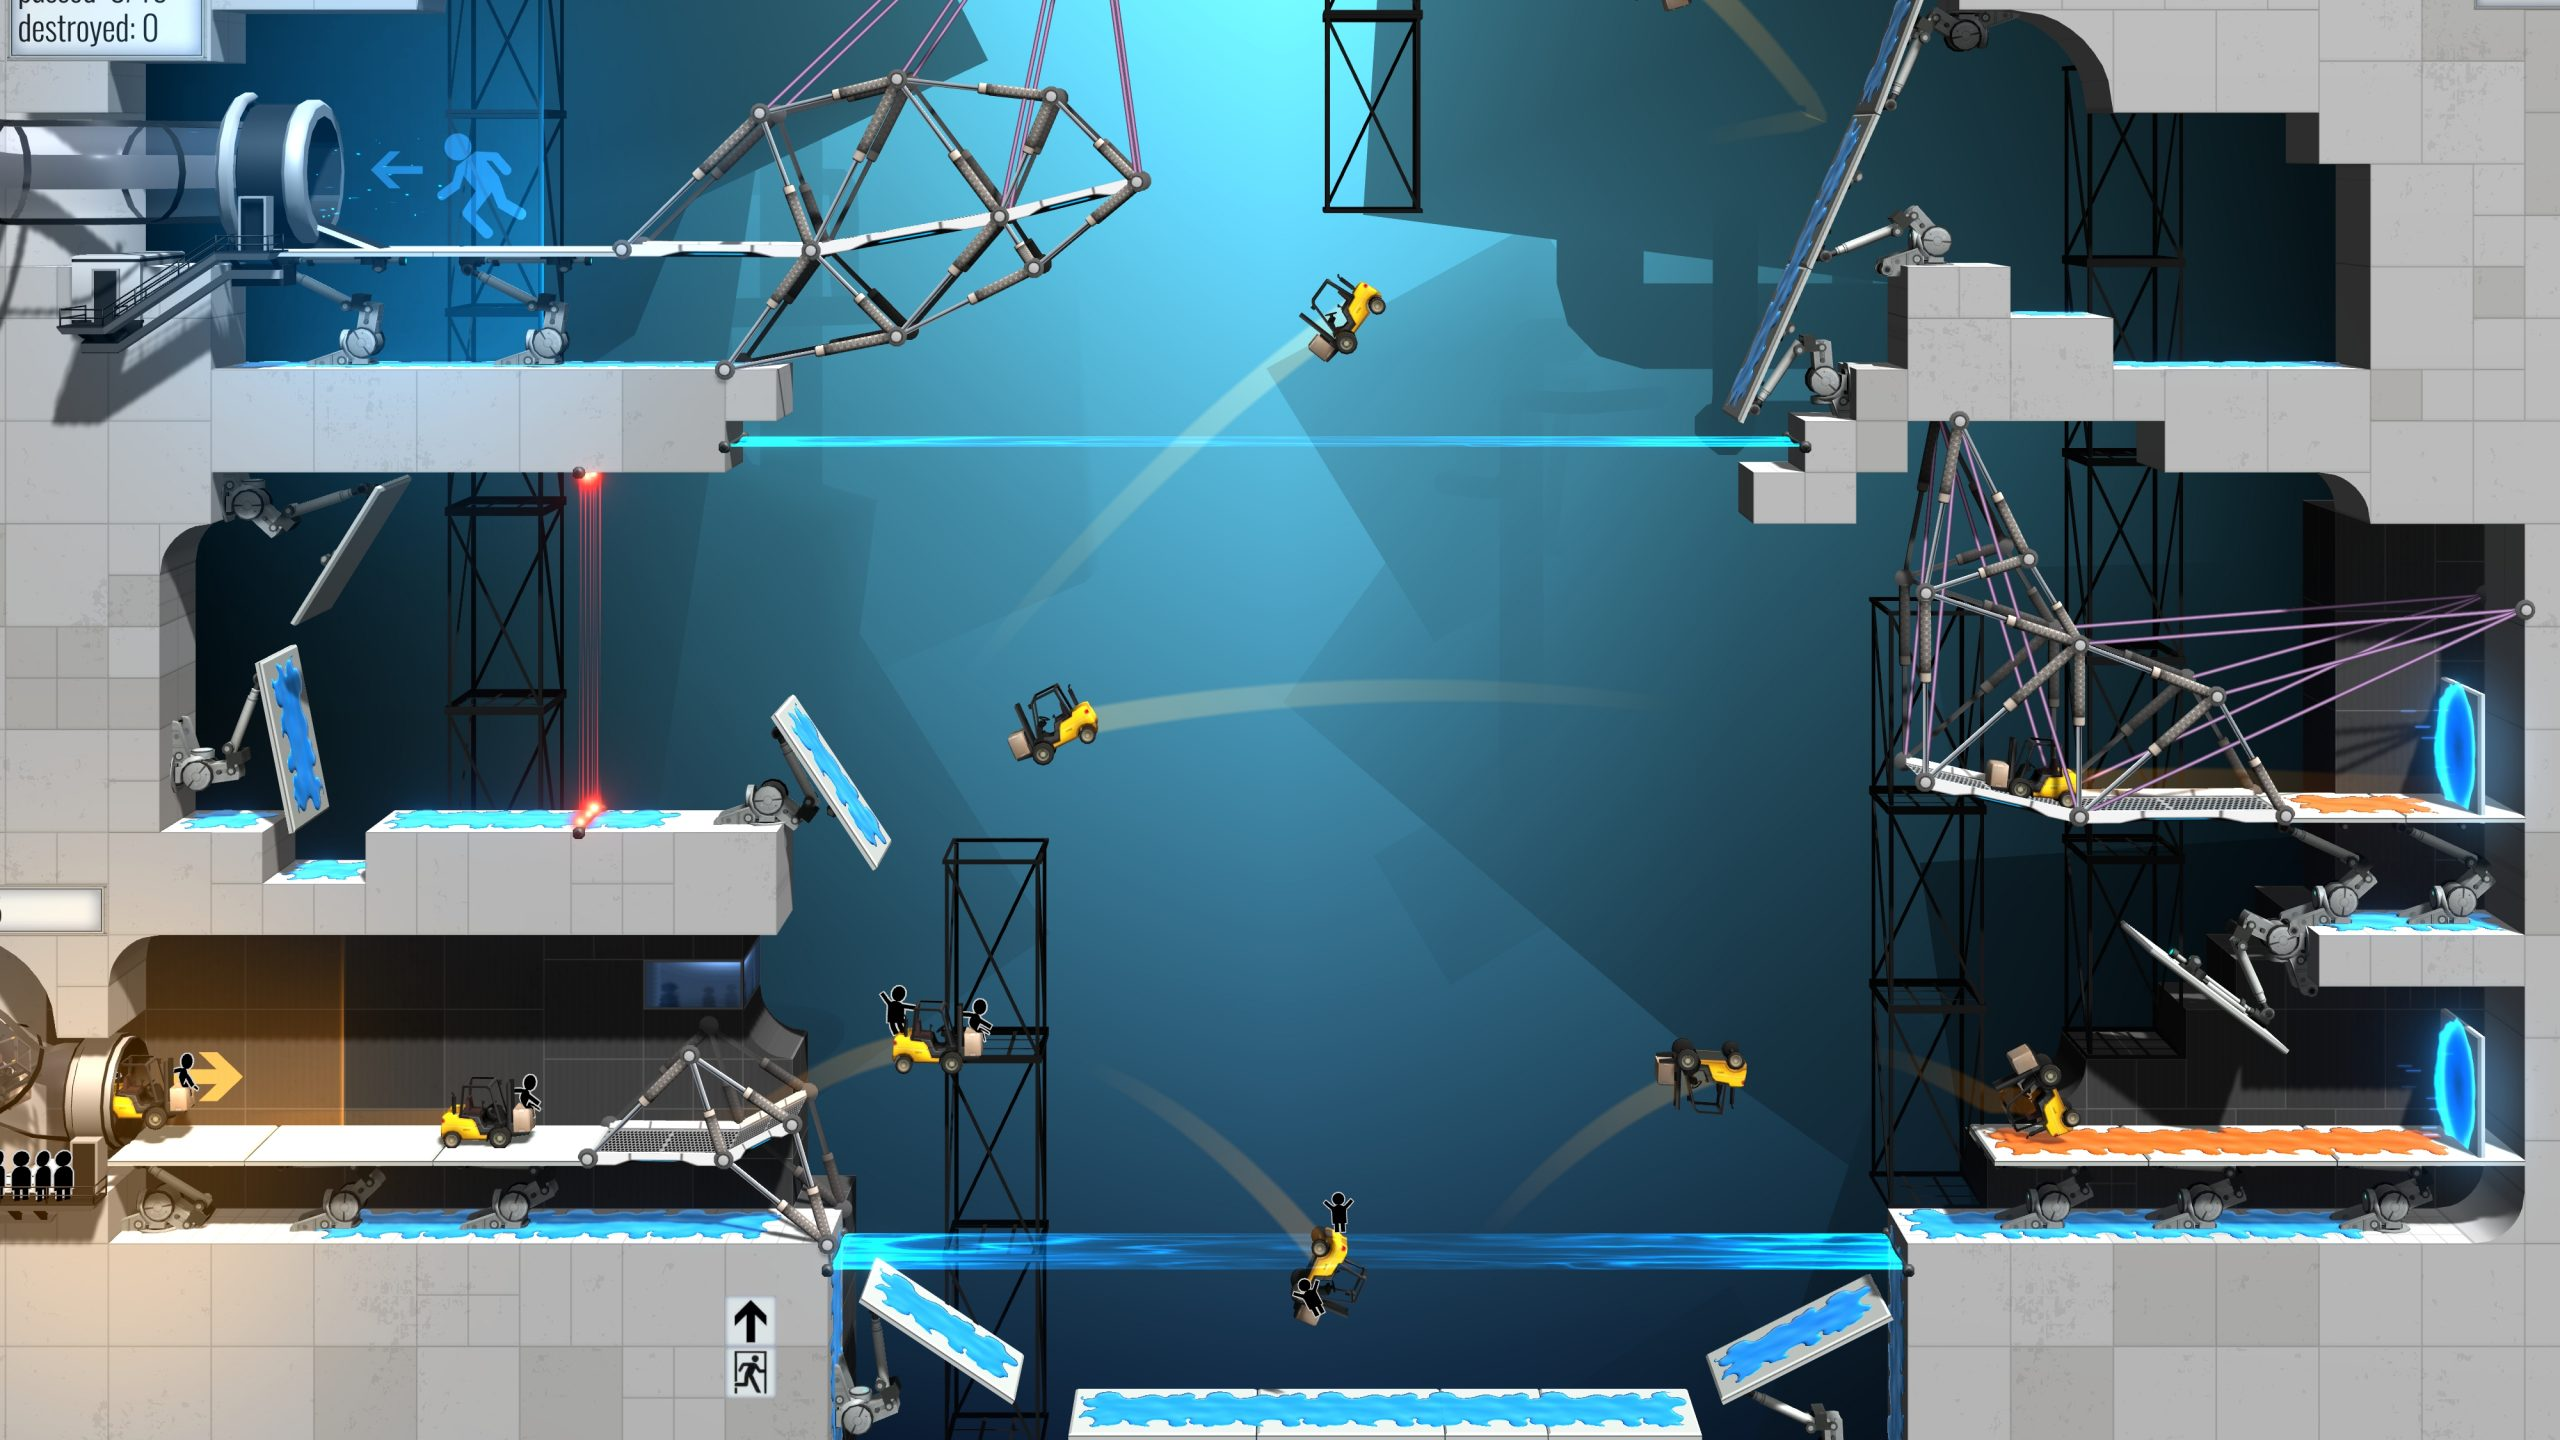 Bridge Constructor Portal tips and tricks - Thinking with Portals, mastering puzzles